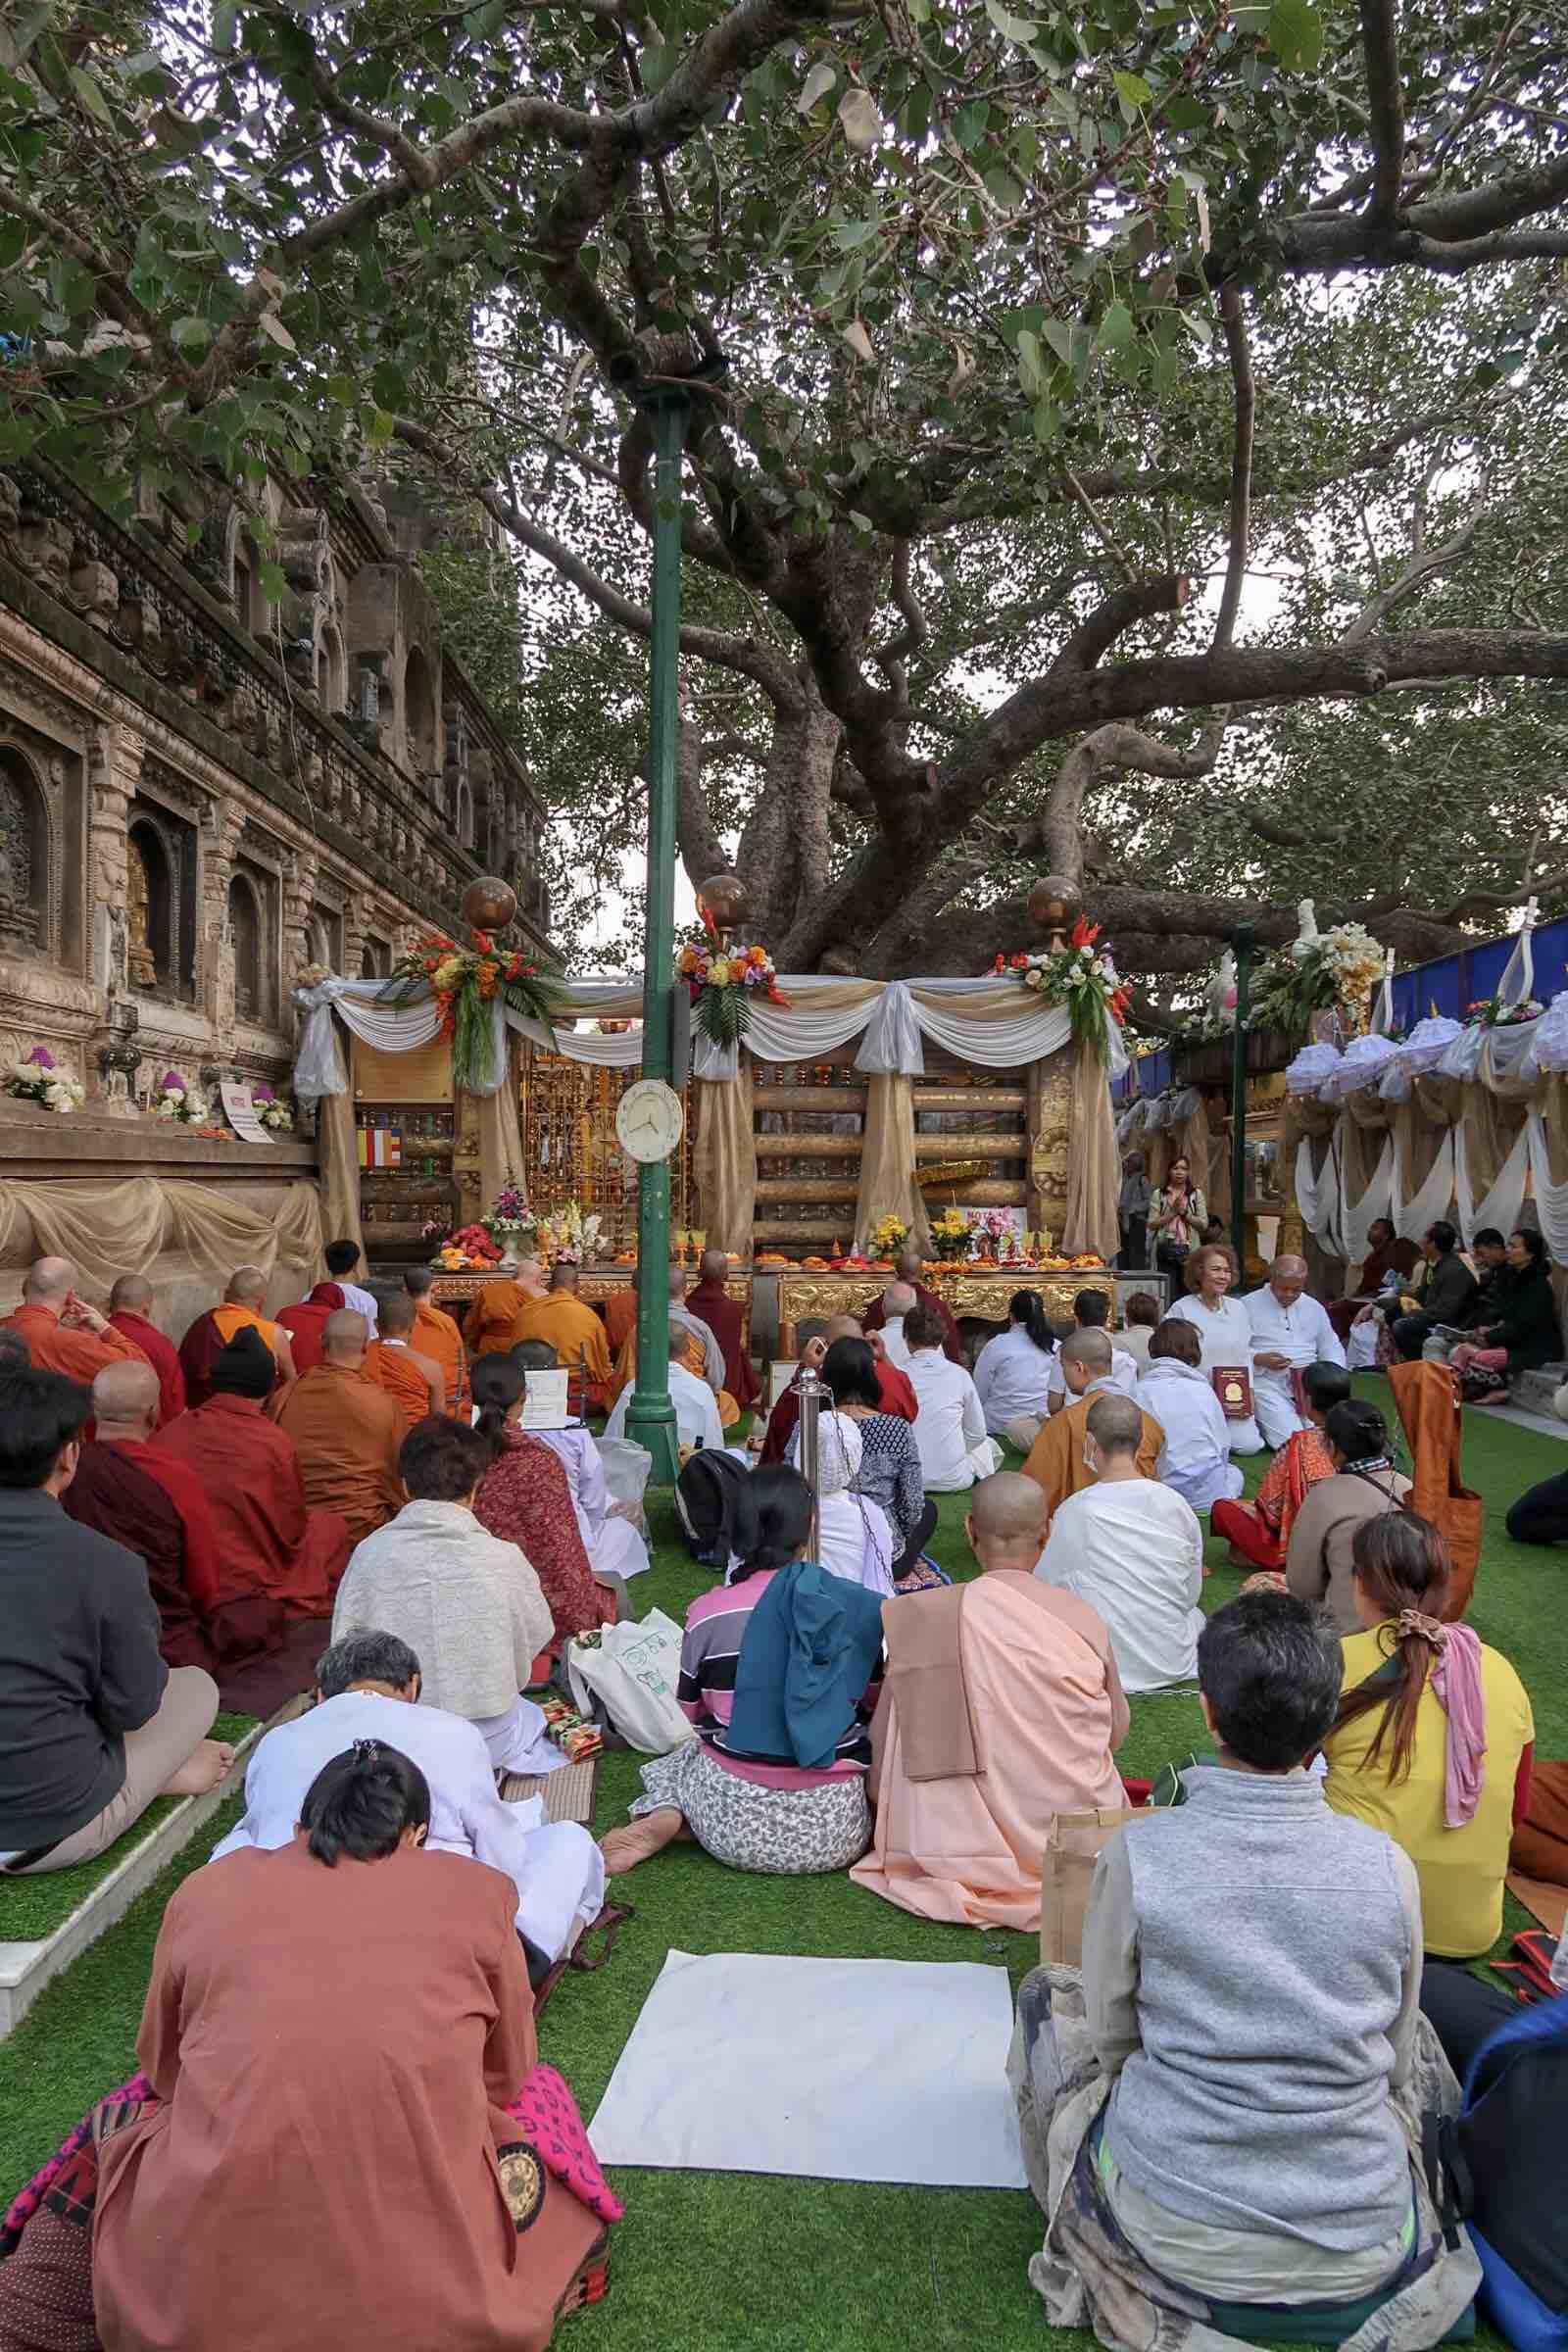 Bodhi Tree at Mahabodhi Temple Complex in Bodhgaya, India. This tree is a 'descendant' of the original Bodhi tree underneath which Buddha reached enlightenment.